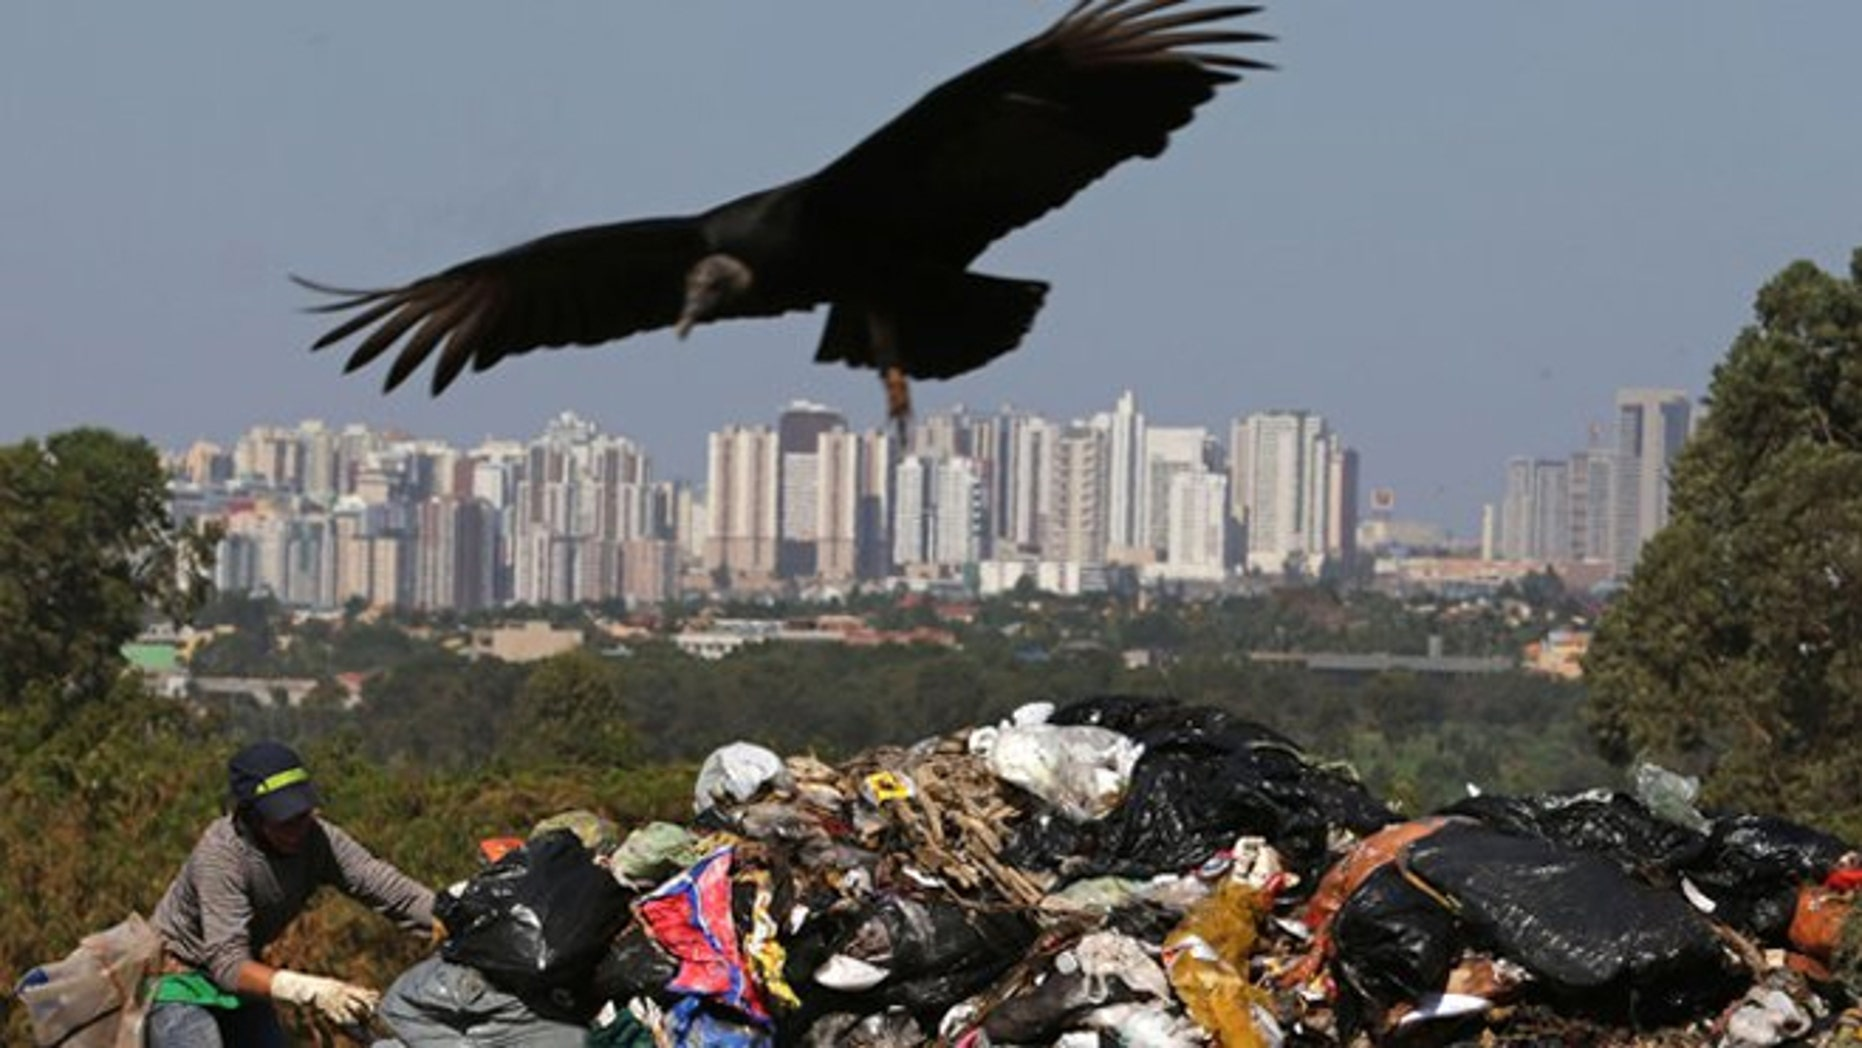 A vulture flies over the Estrutual landfill where a man searches for recyclable materials near downtown in Brasilia, Brazil.